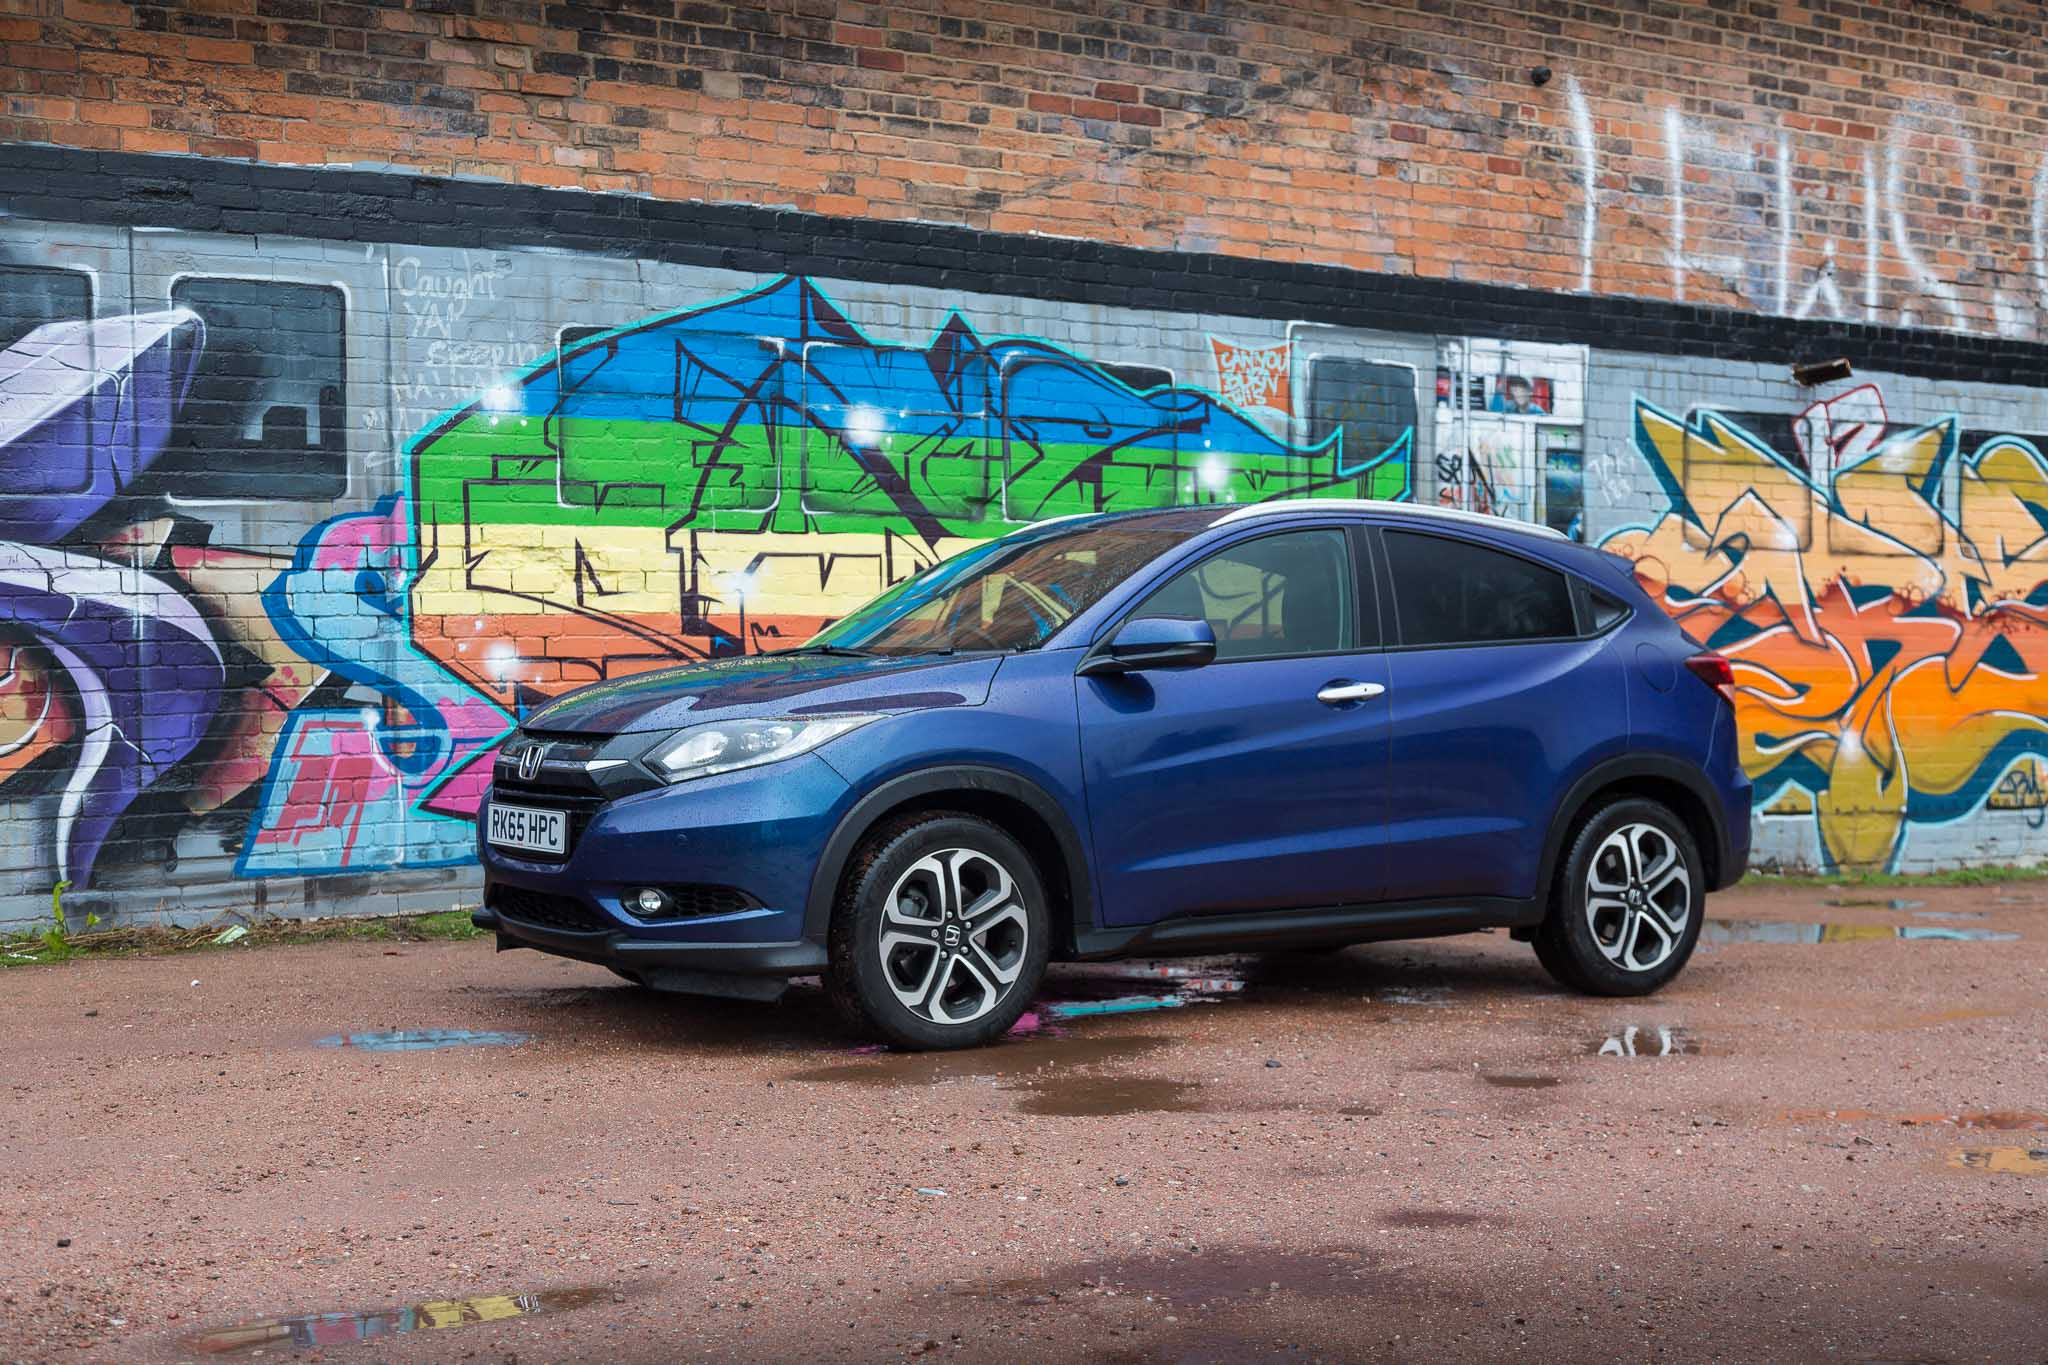 The Honda HR V Is A Super Small SUV That Has Lots Of Practicalities And Lot Going For It